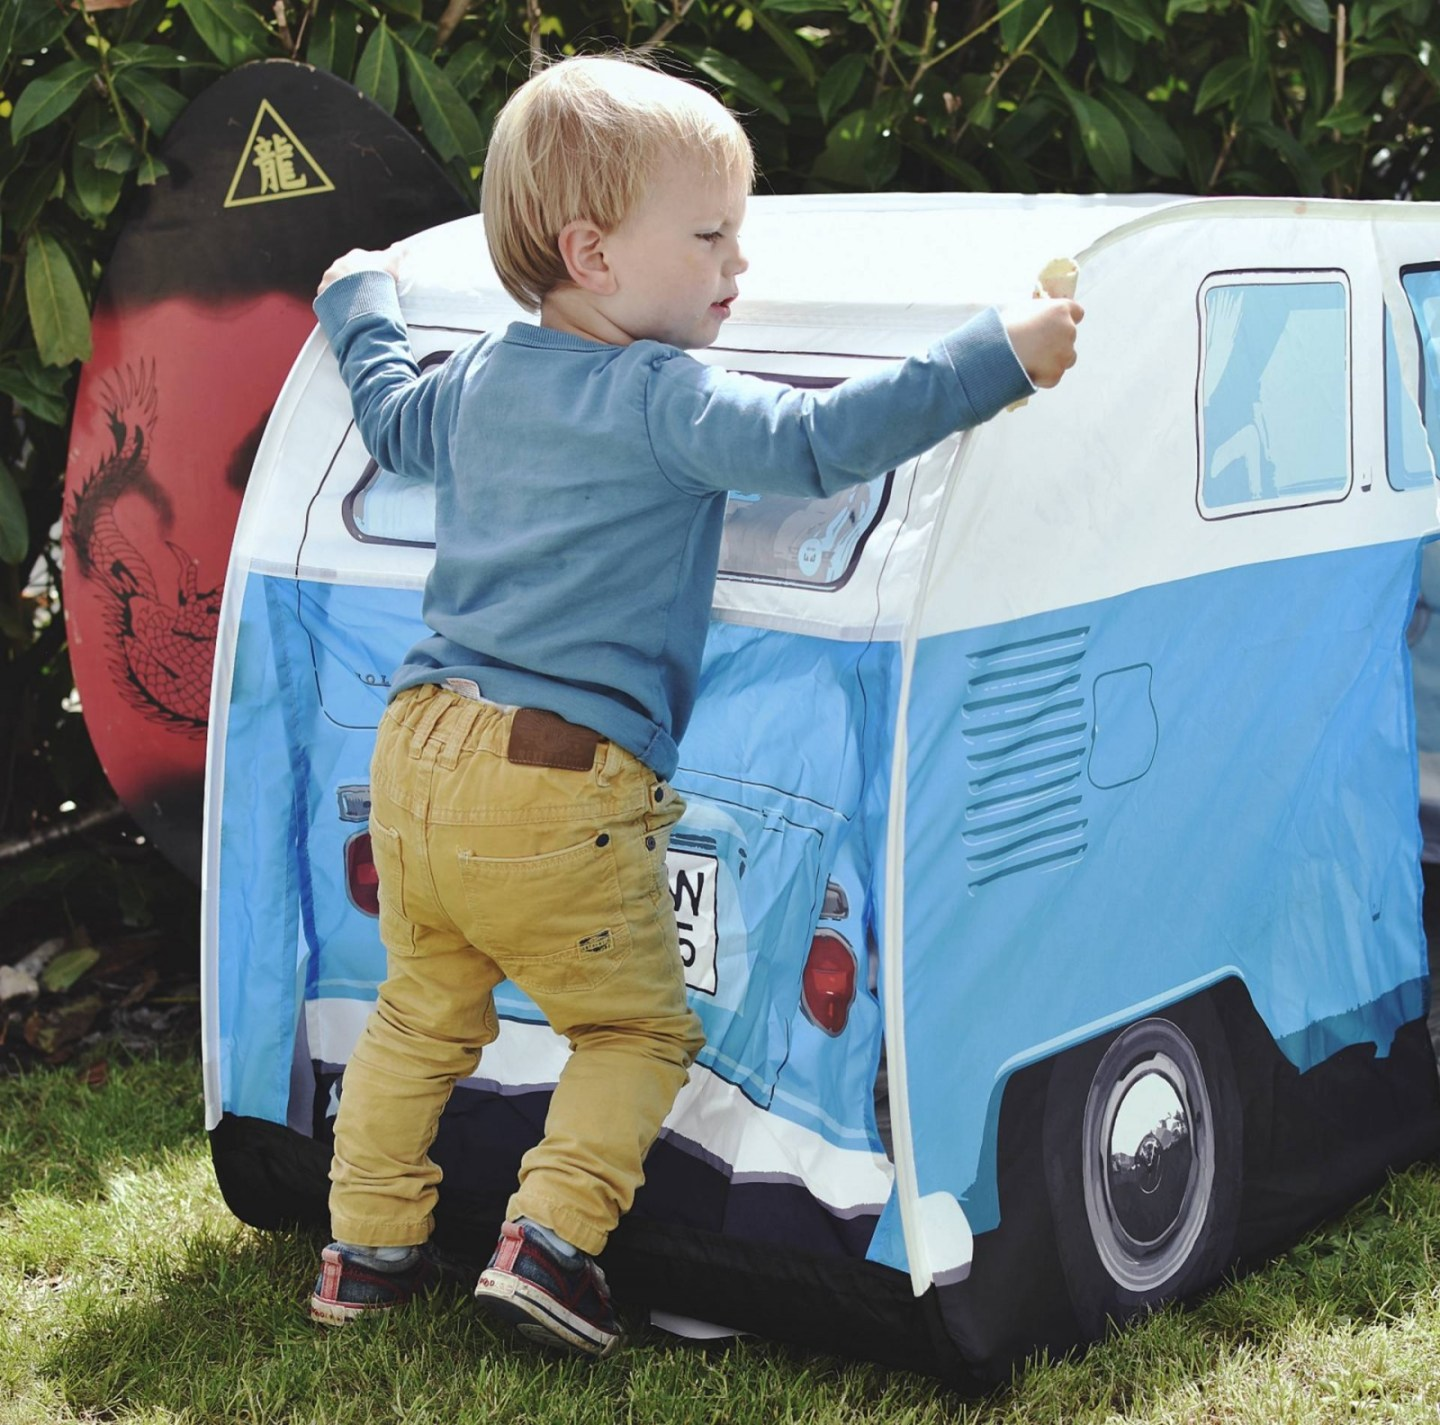 what a funky way to liven up your garden and keep your children safe, this VW camper van